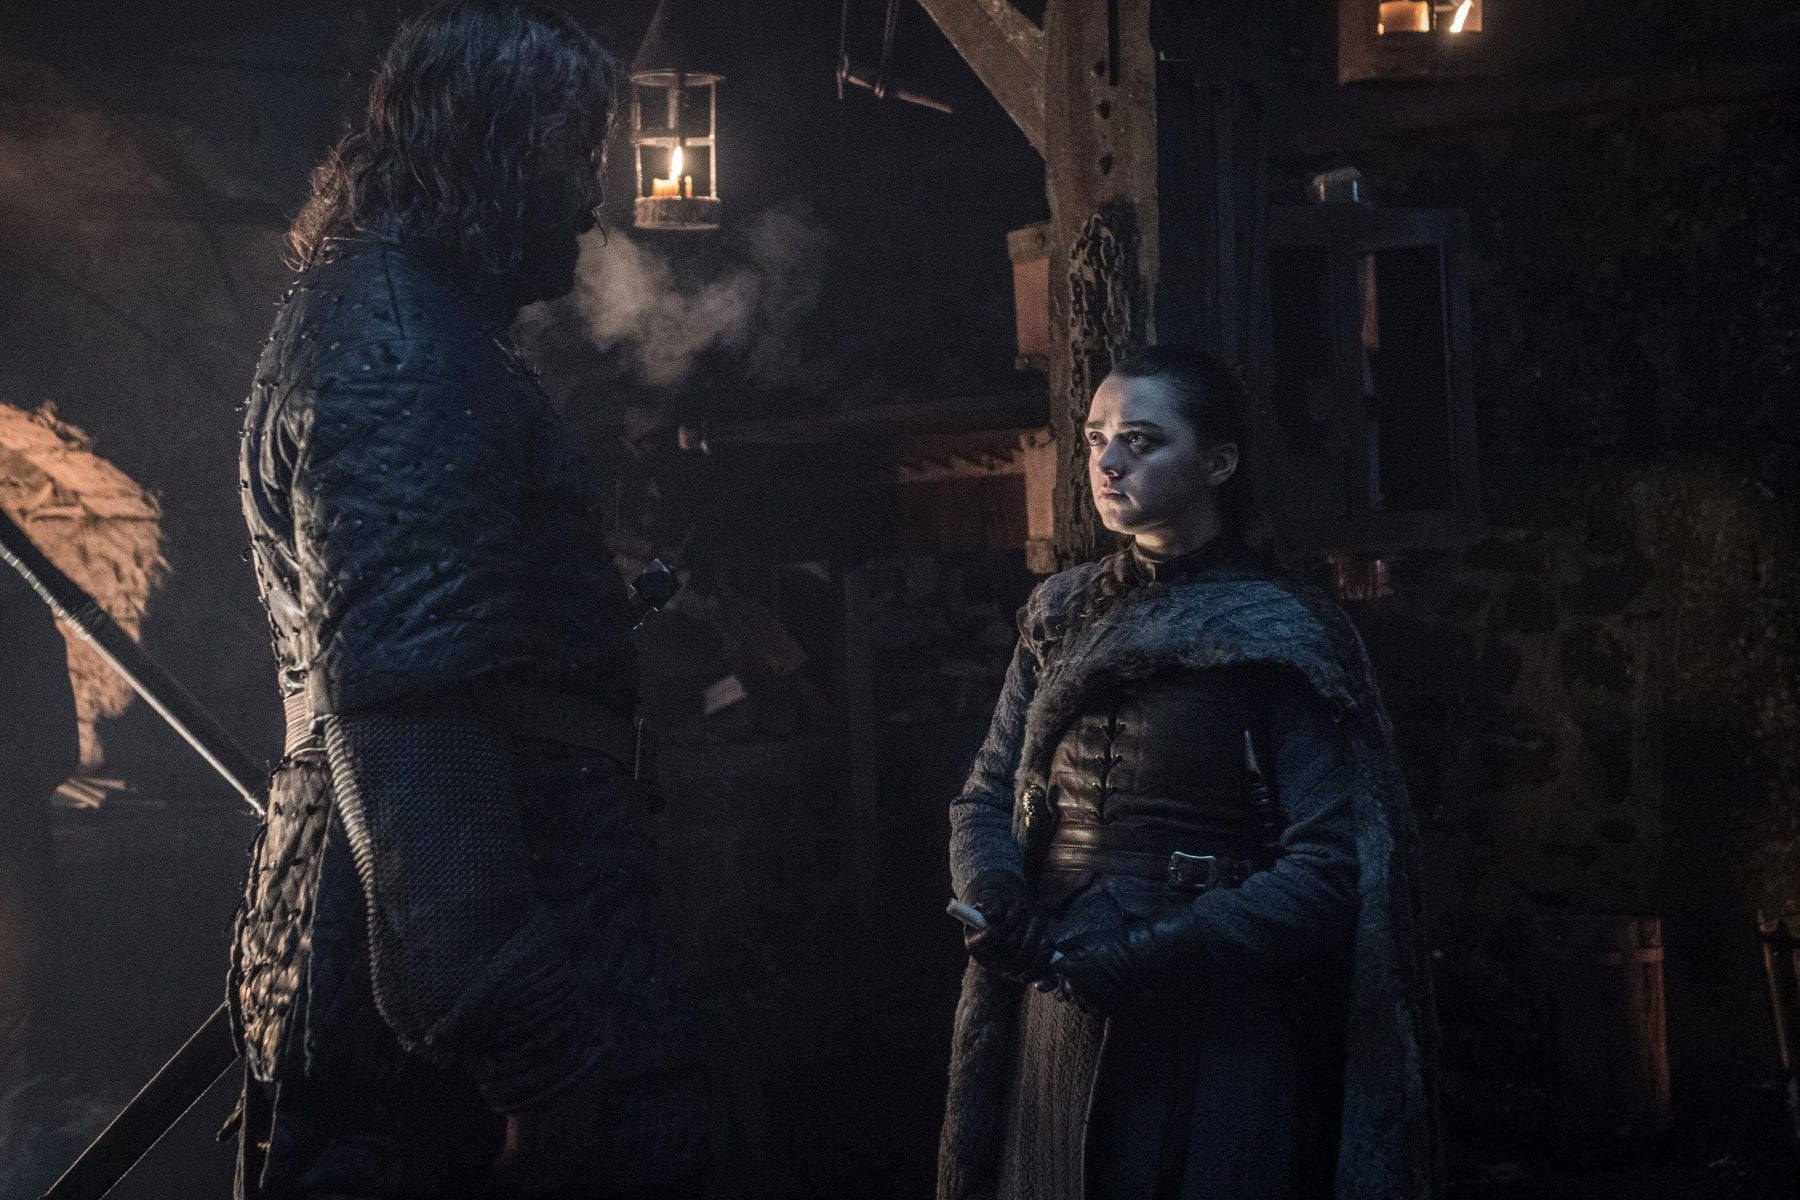 Arya Stark and The Hound are reunited in the Season 8 premiere of Game of Thrones